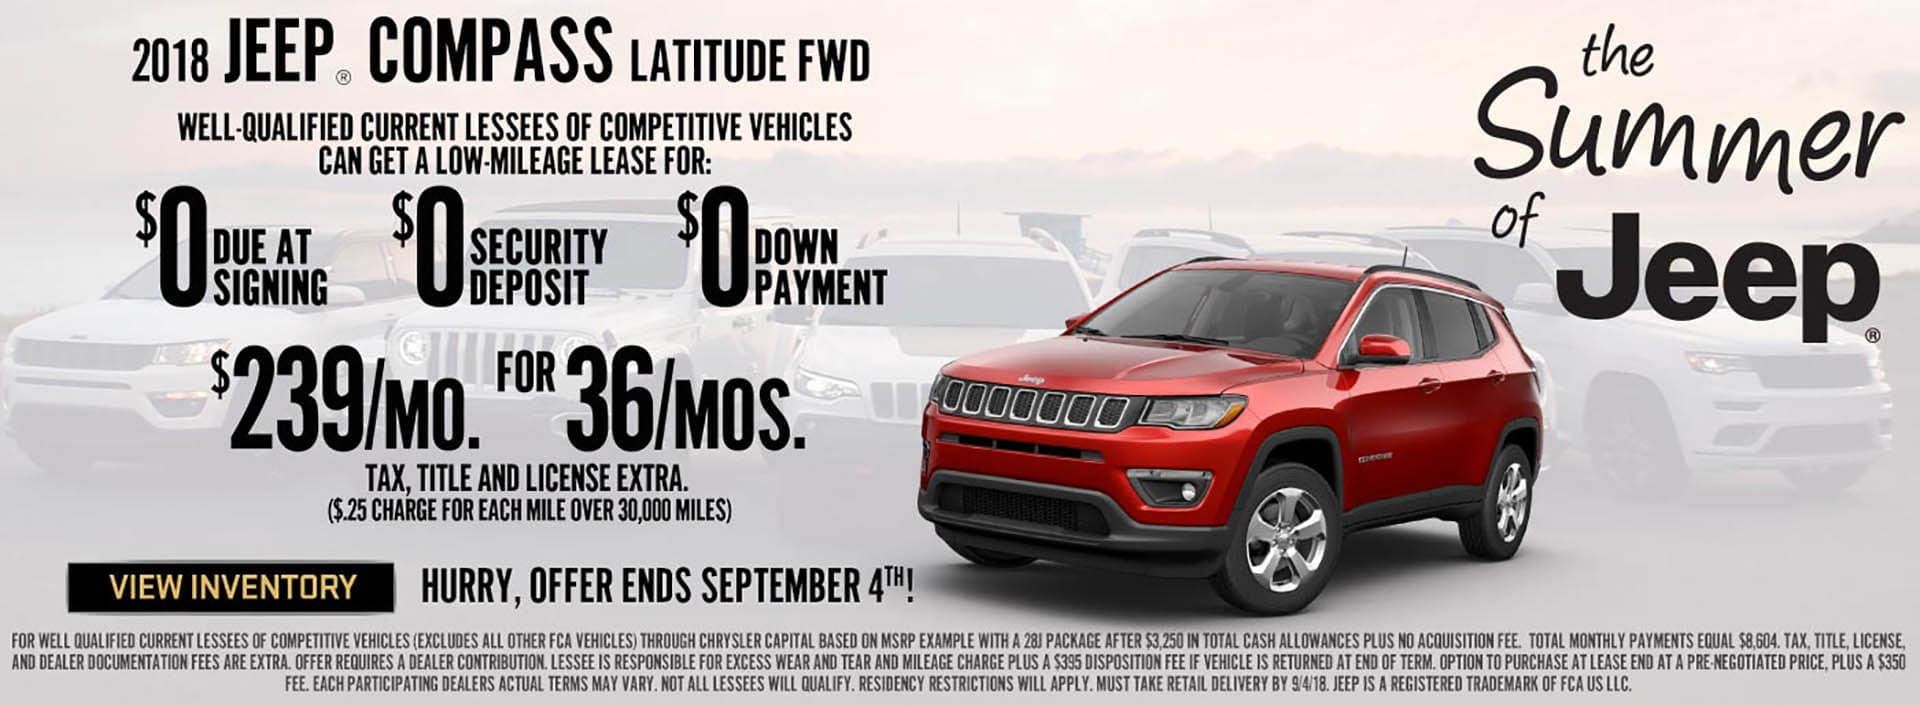 Jeep Compass $239 Lease Offer